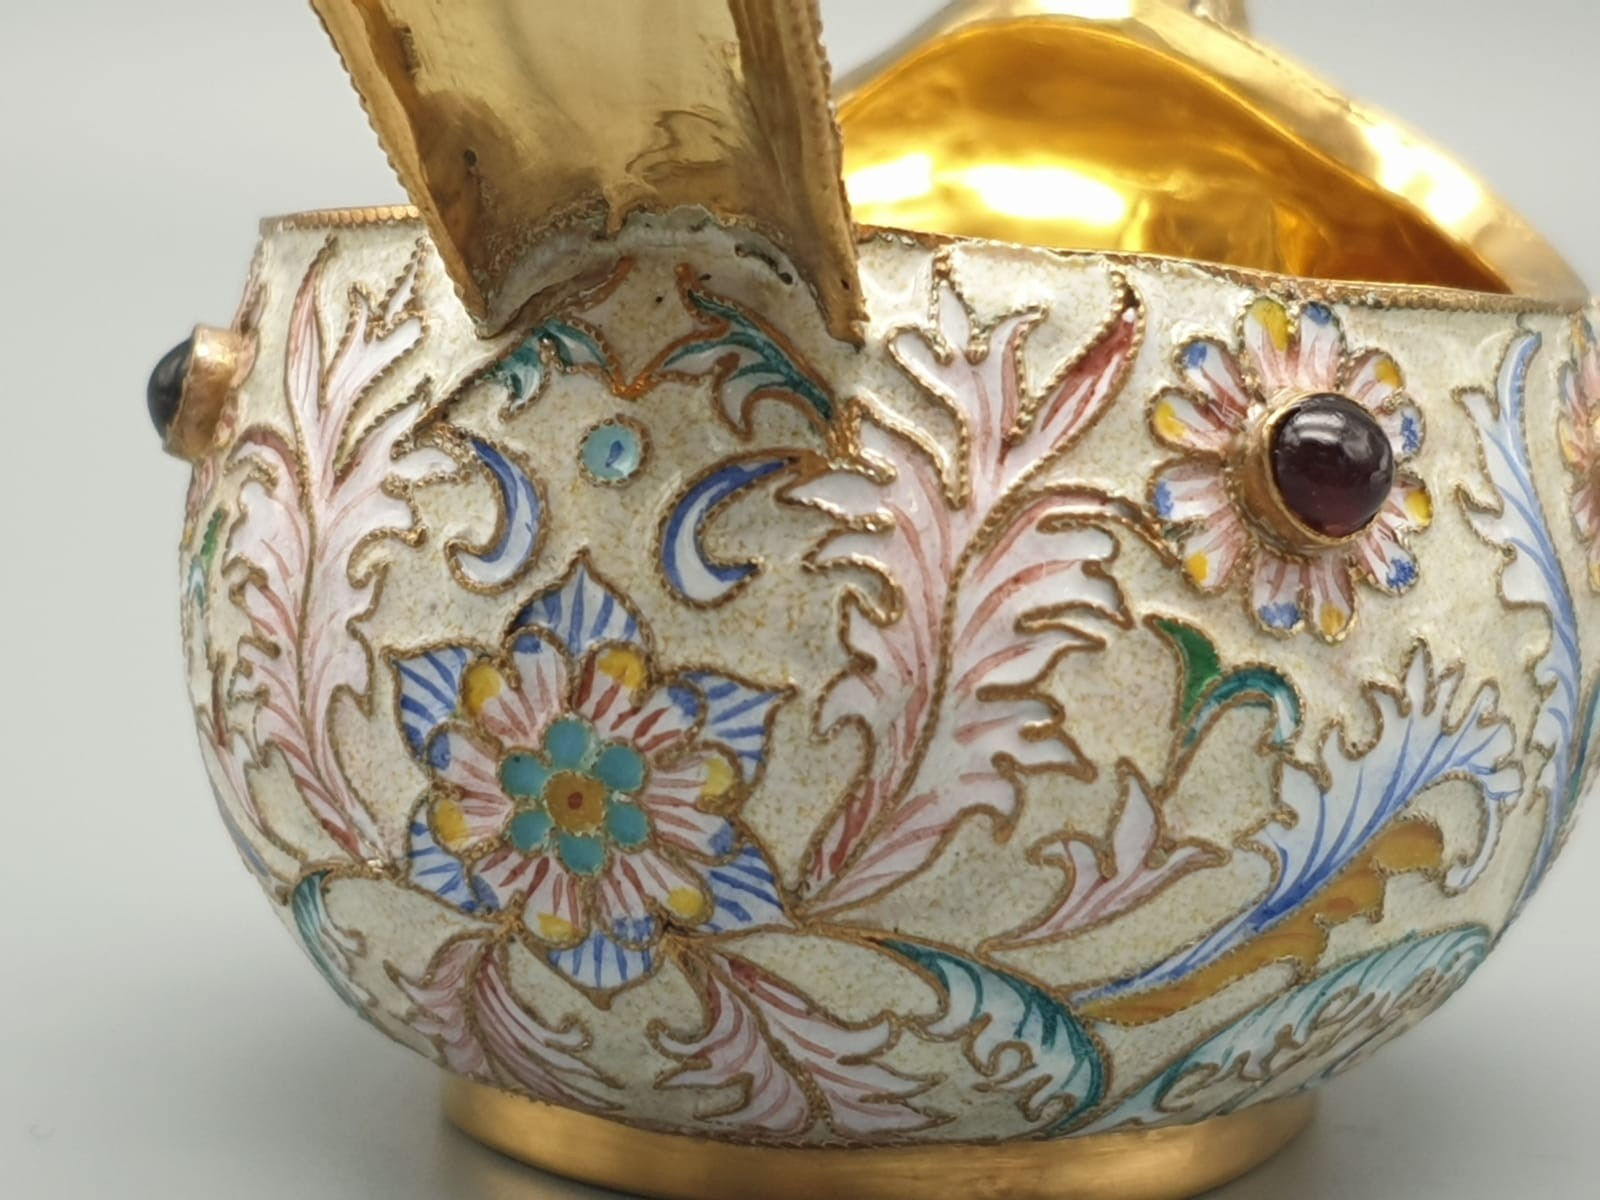 Pair of Russian 20th century silver enamel gemset kavosch bowl in the form of birds, an exquisite - Image 27 of 29